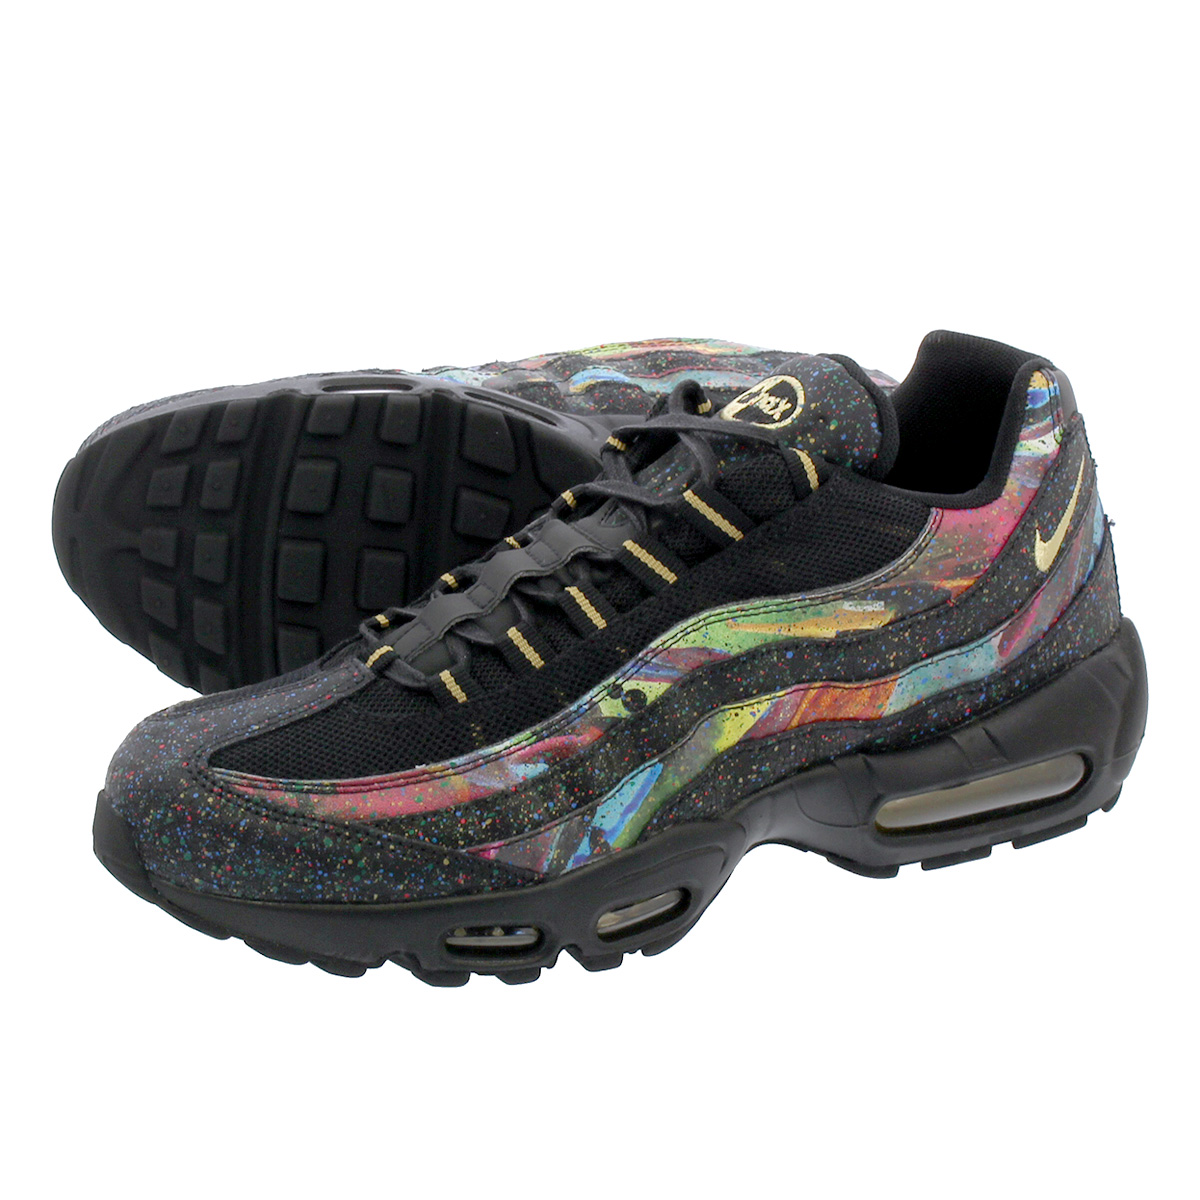 new style d4c30 49e0d NIKE AIR MAX 95 NS GPX Kie Ney AMAX 95 NS GPX BLACK/METALLIC GOLD at6142-001